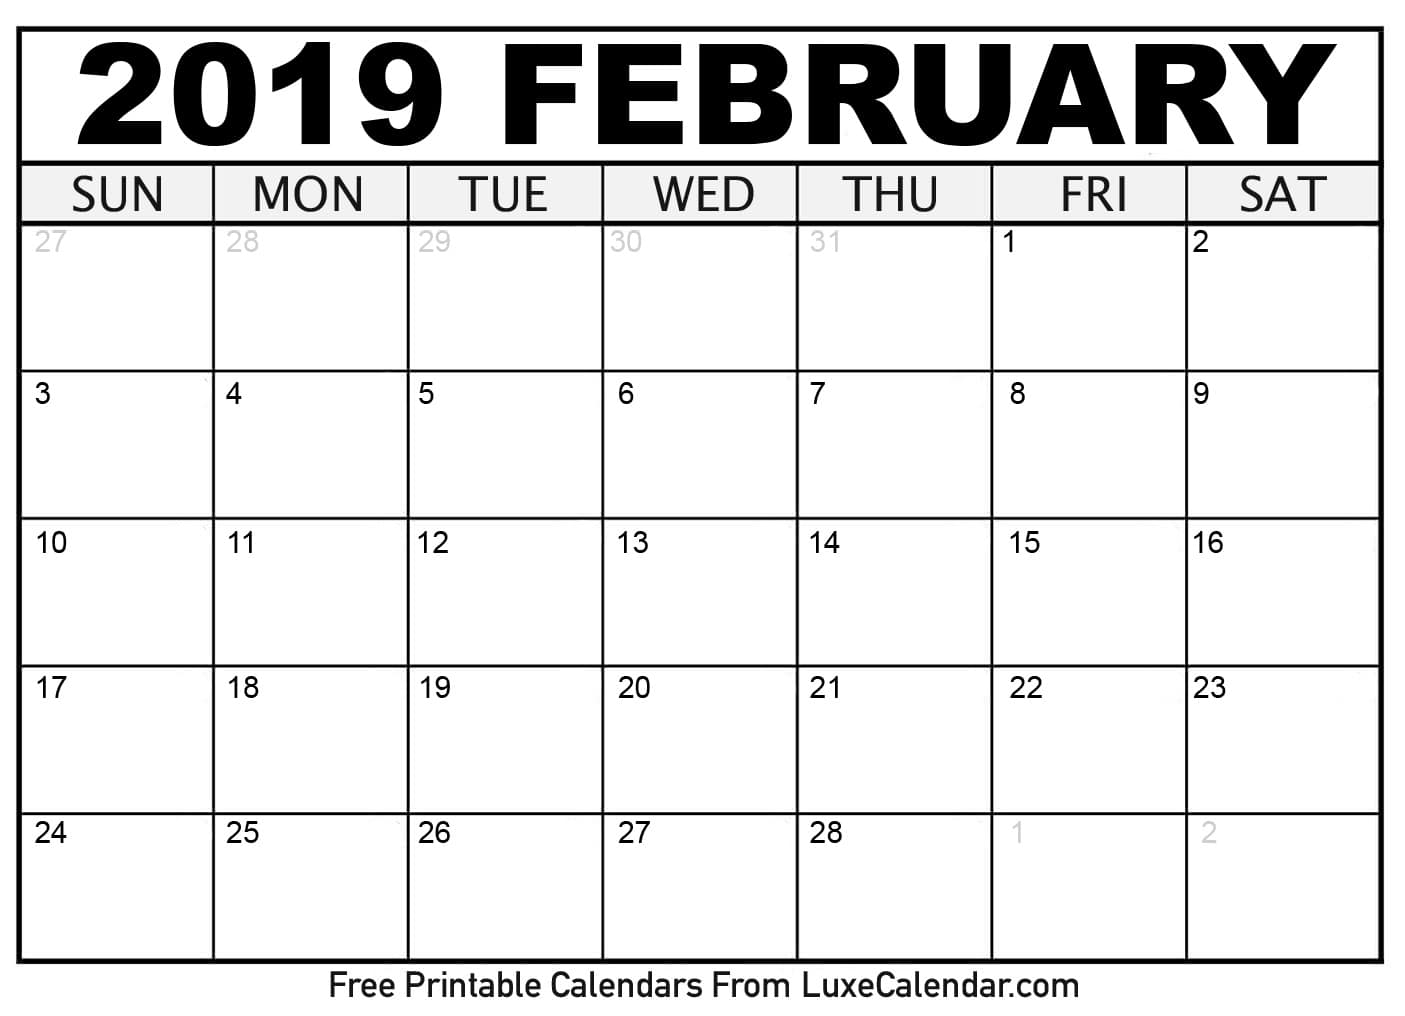 2019 February Calendar 7 Recommended Tools to Build 2019 February Calendar | Posts by